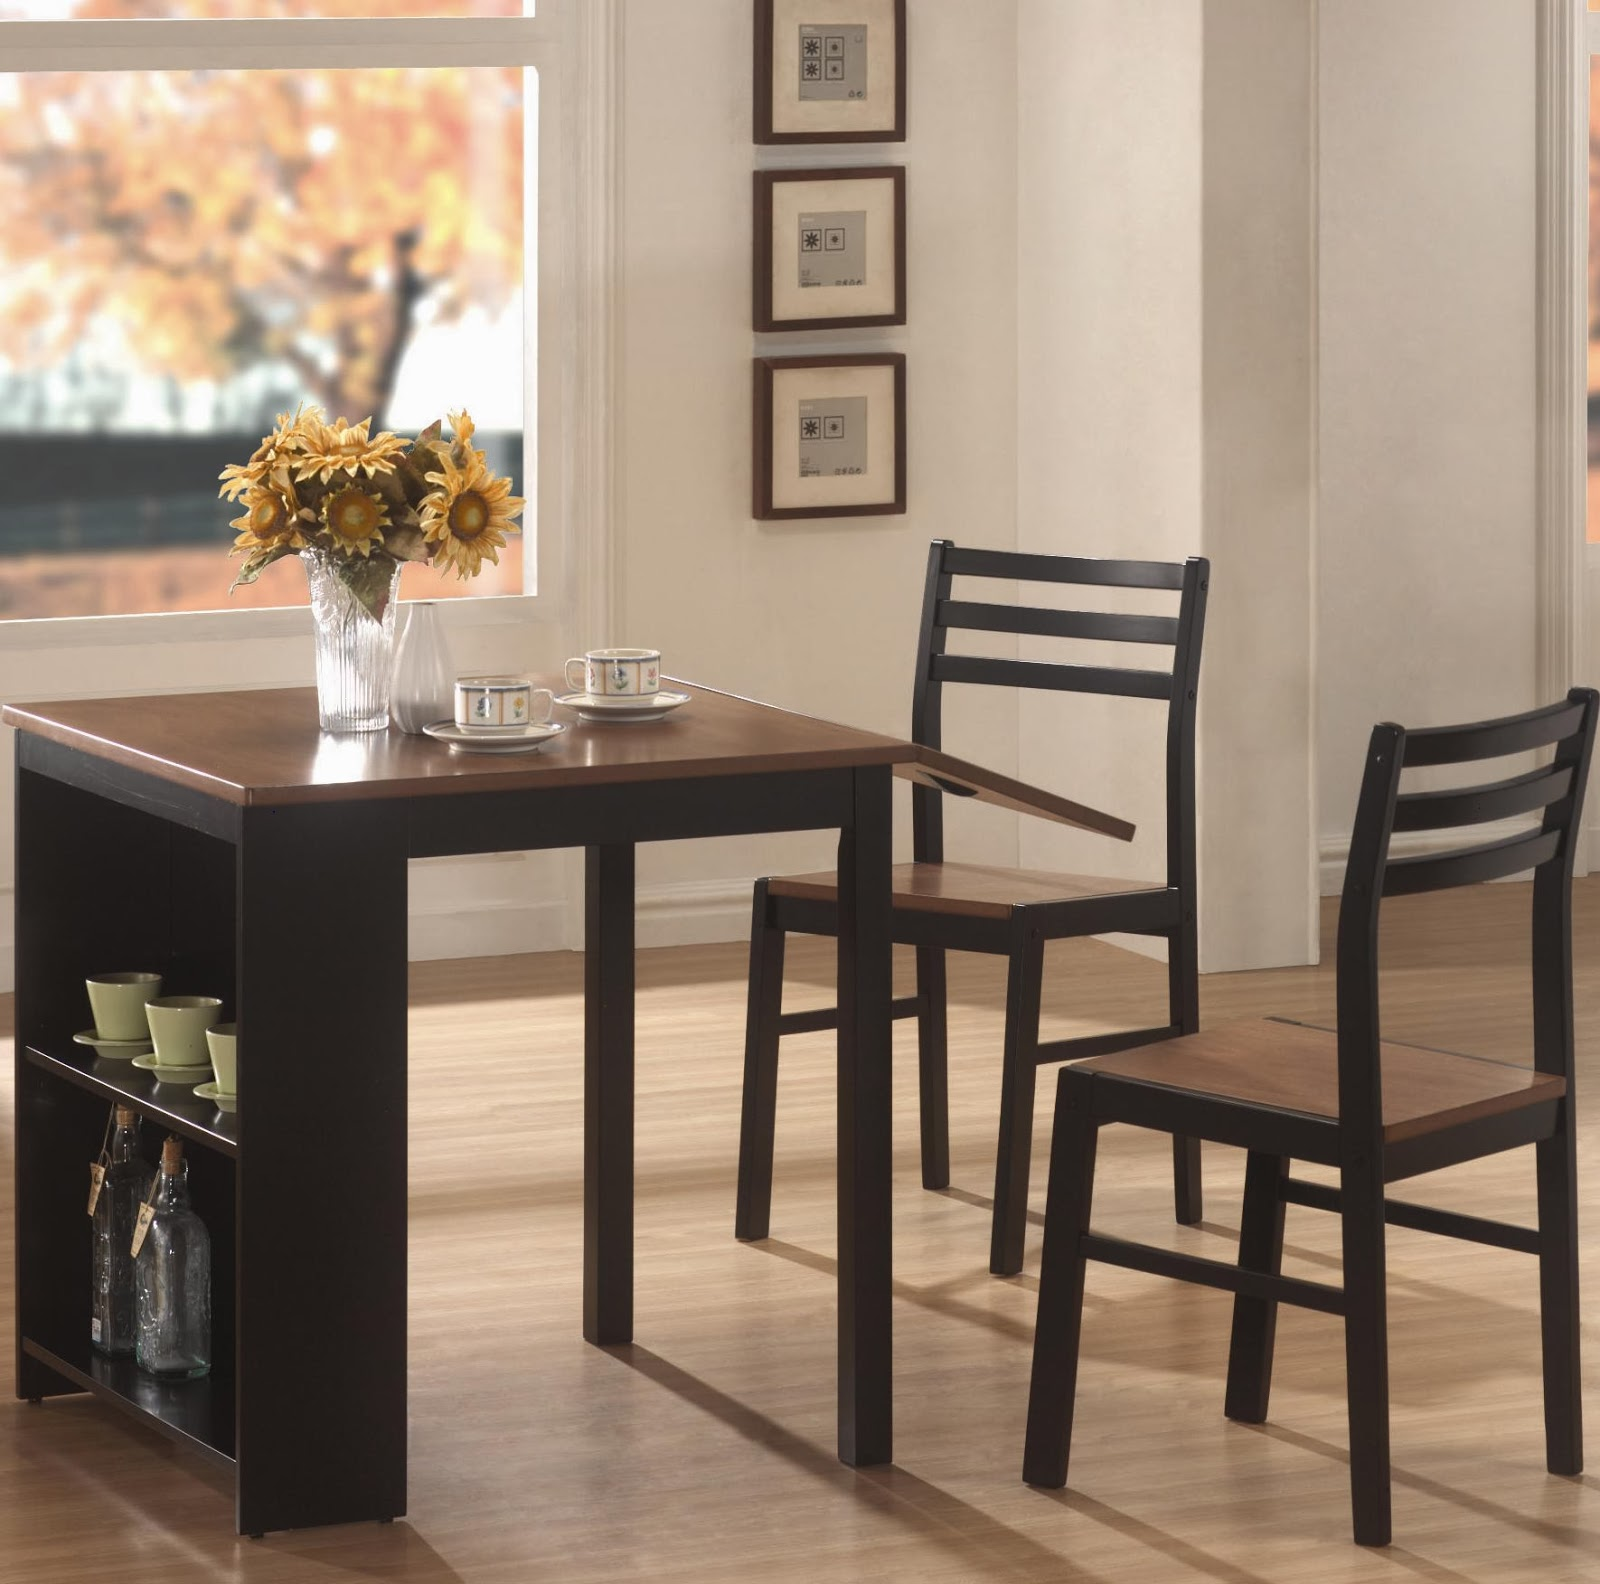 Small Dining Table Modern One Hundred Home Modern Kitchen Tables For Small Spaces